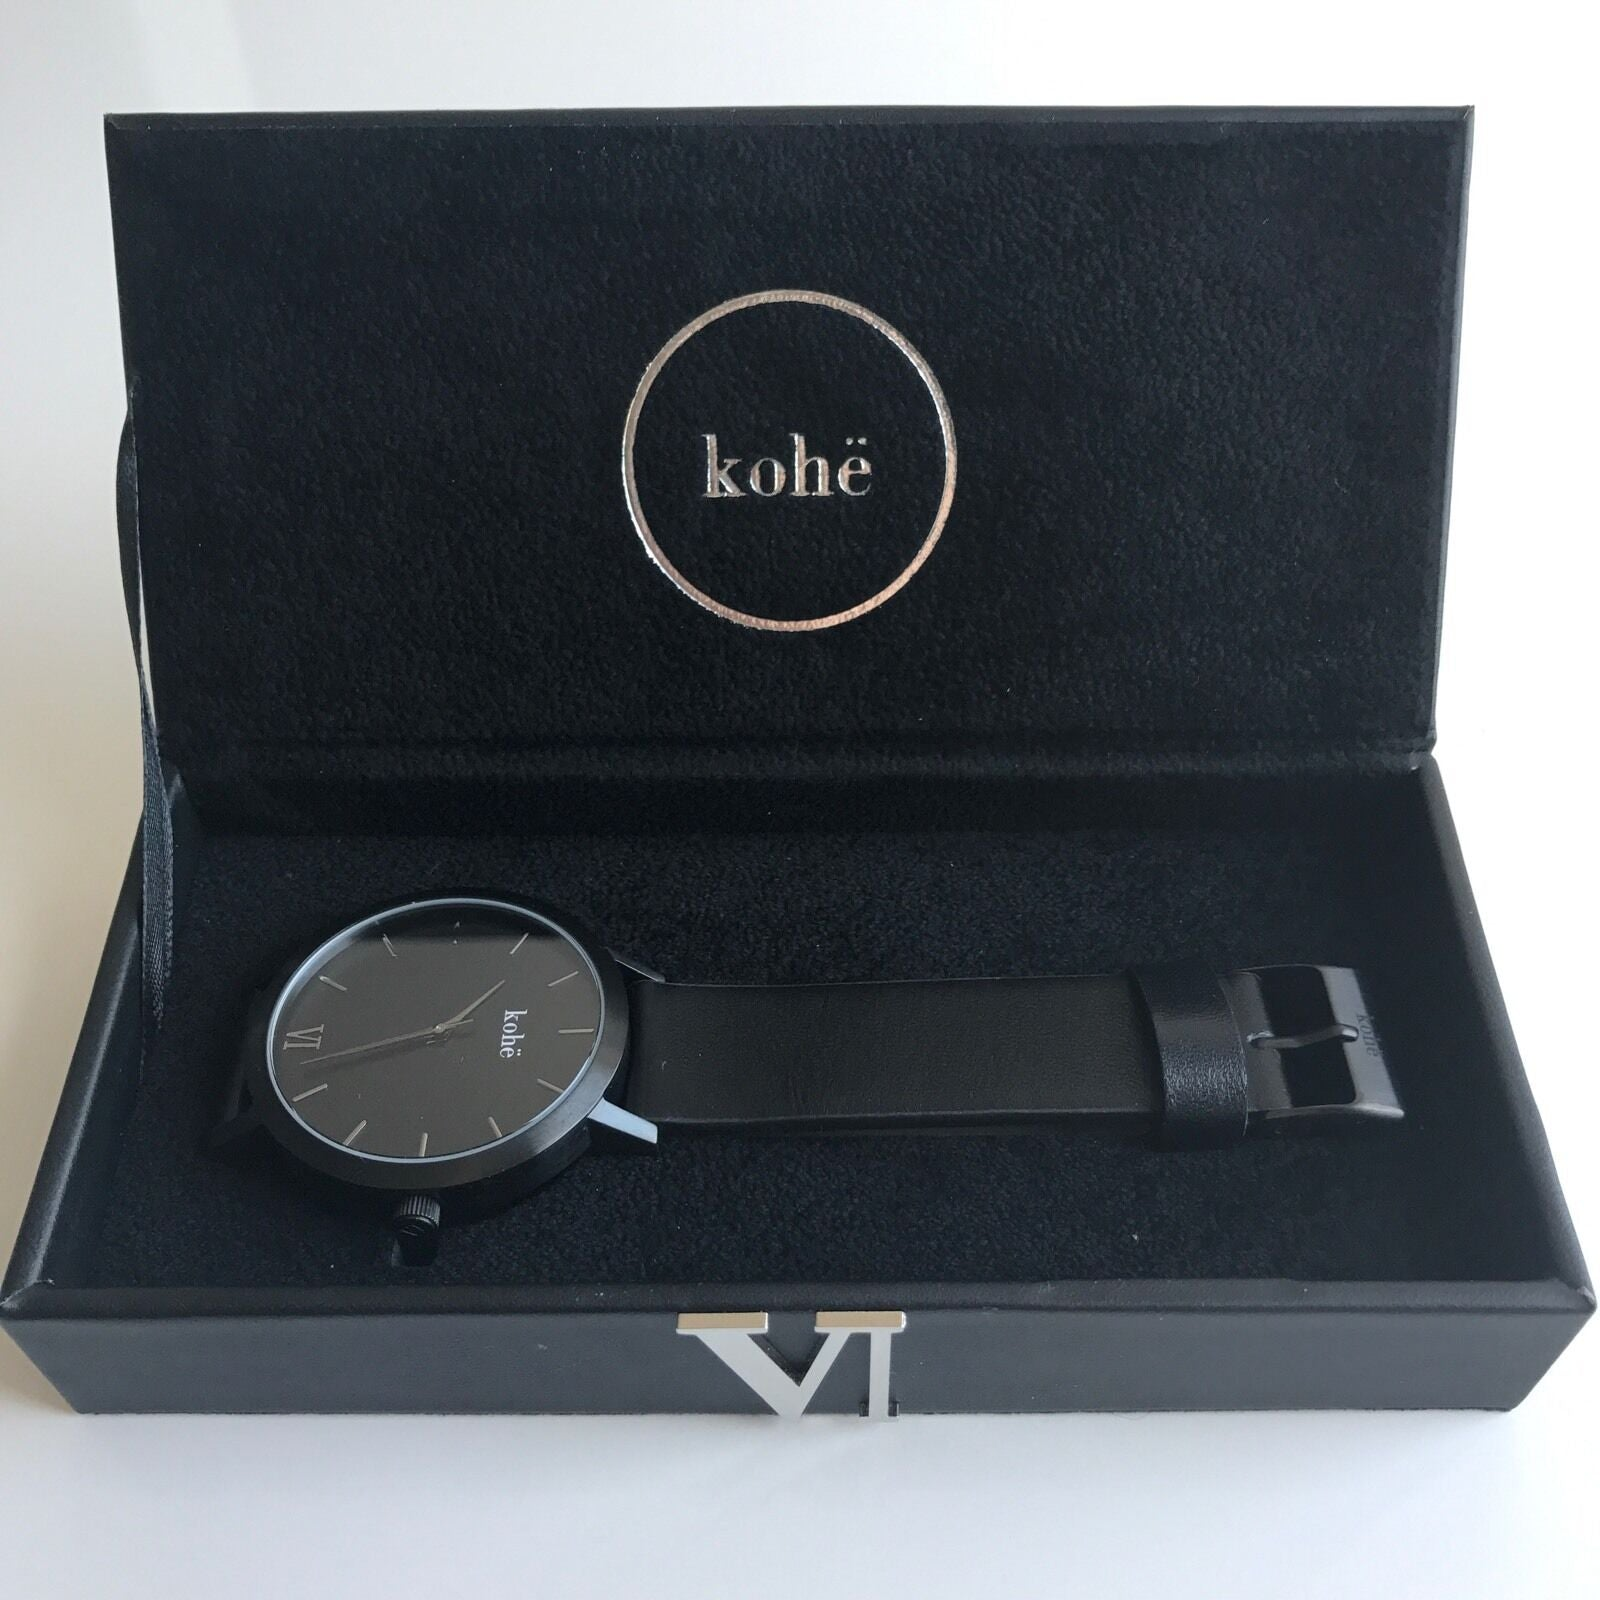 Kohë Watch - Matte Black With Leather Band